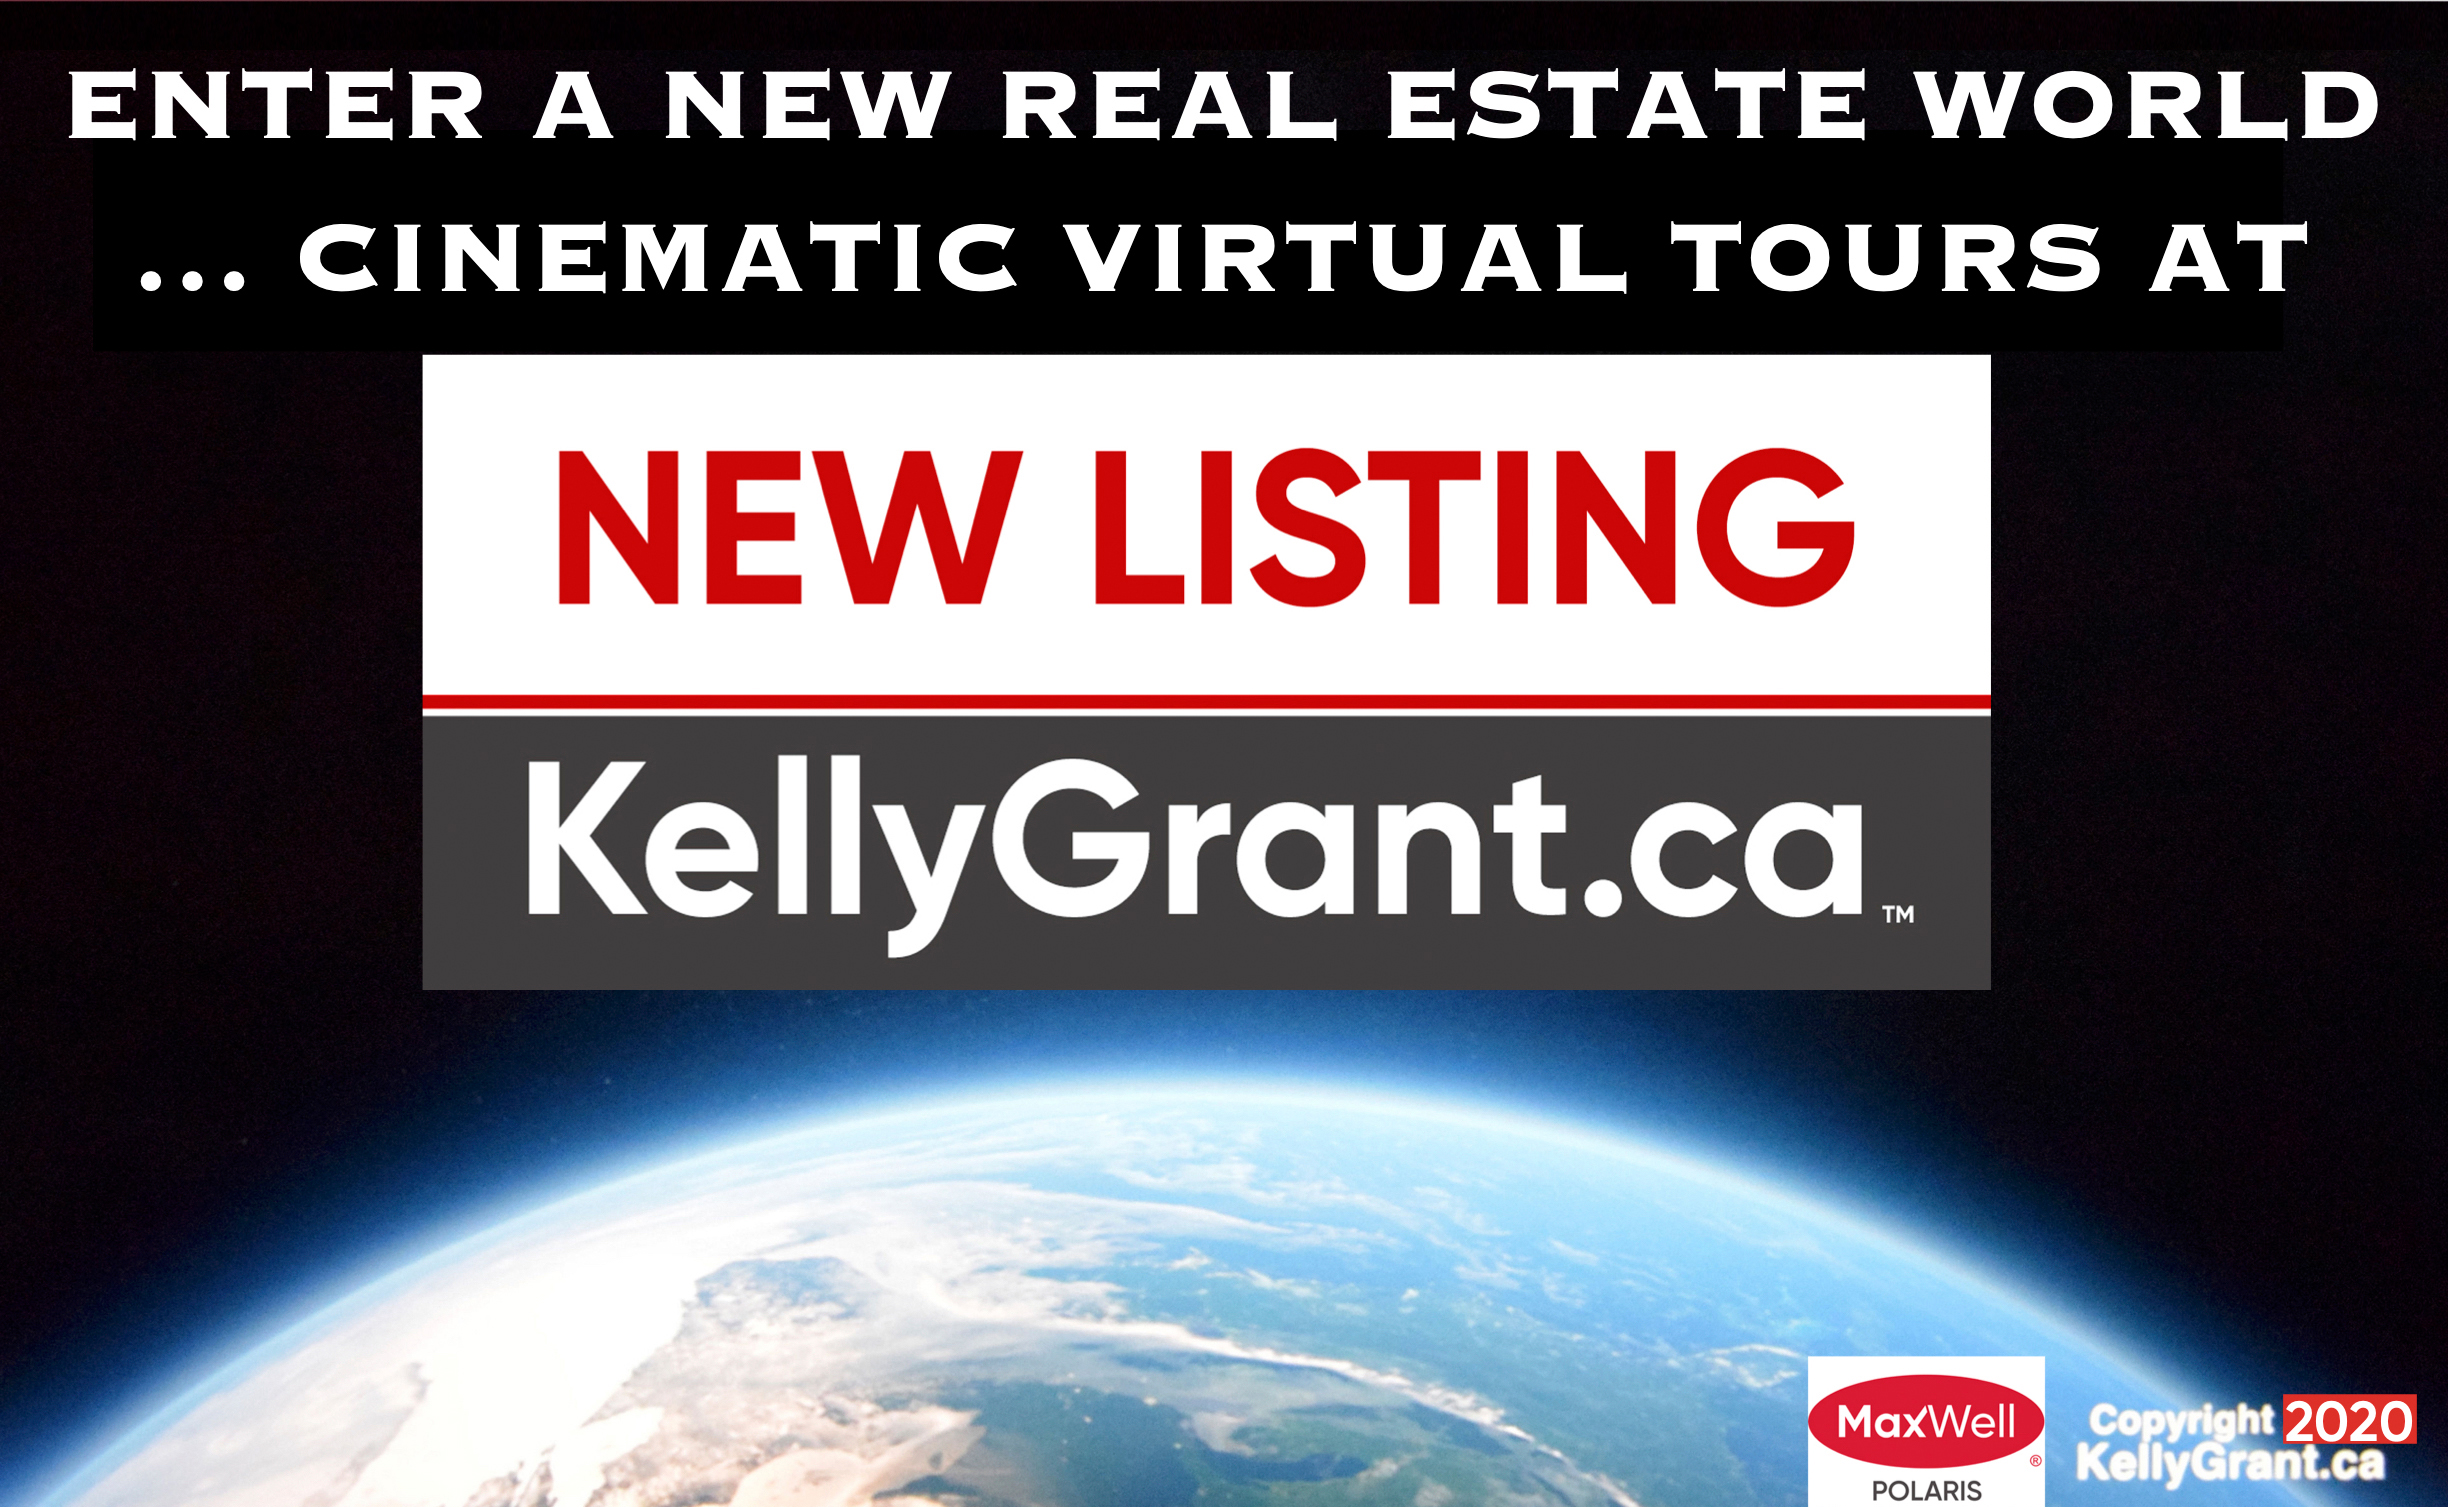 #17-KG Enter a New Real Estate World Cinematic Virtual Tours.jpg